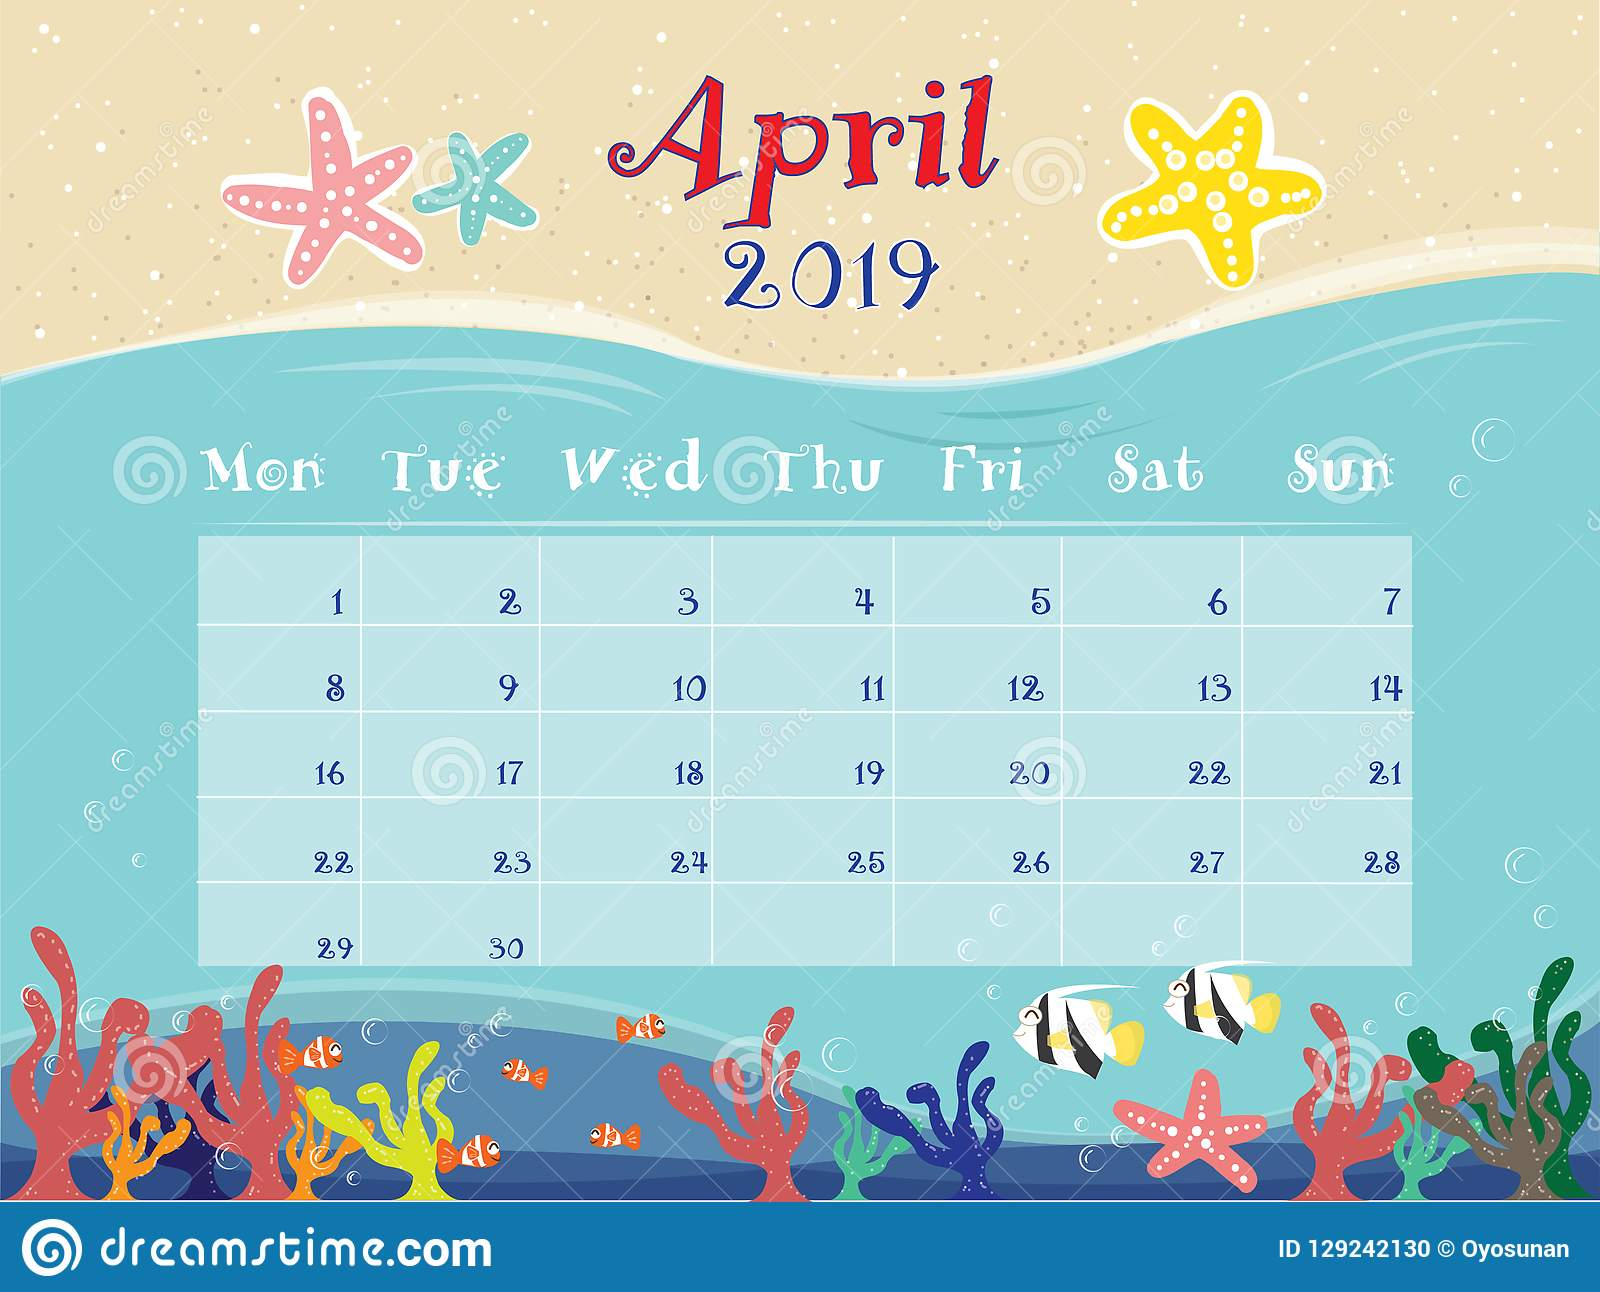 The Ocean Calendar Of April 2019  Stock Vector - Illustration of